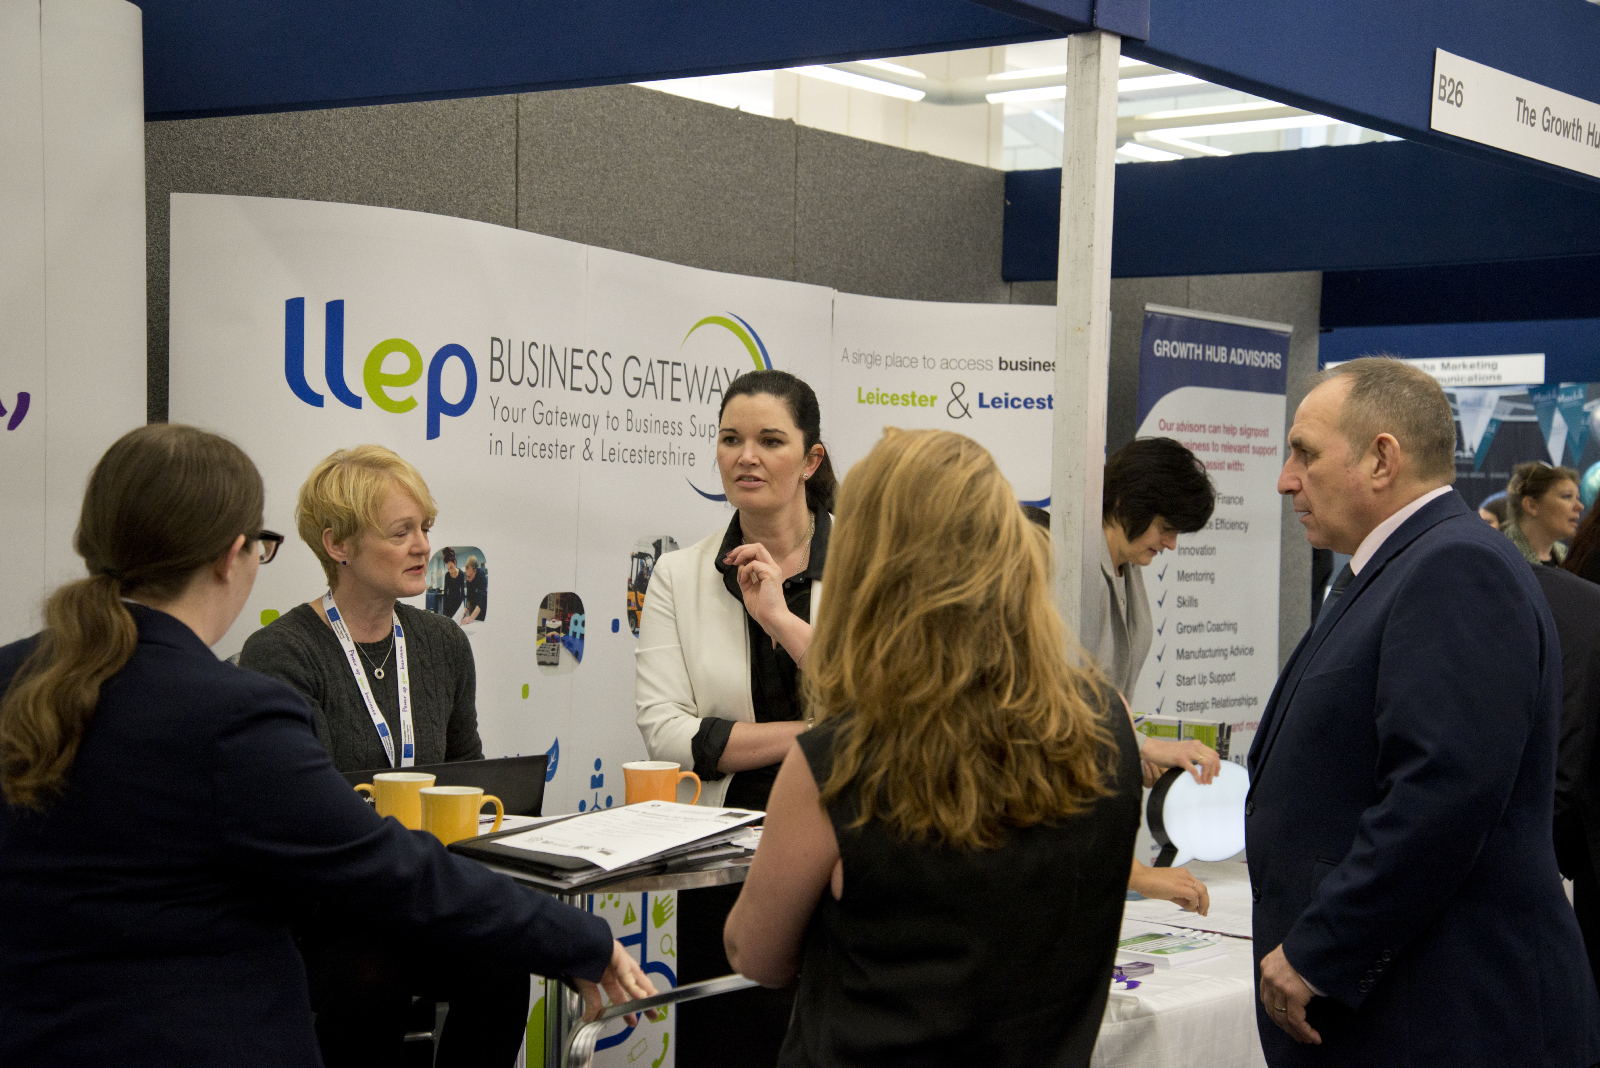 Stand T5 at Love Business EXPO has just been booked